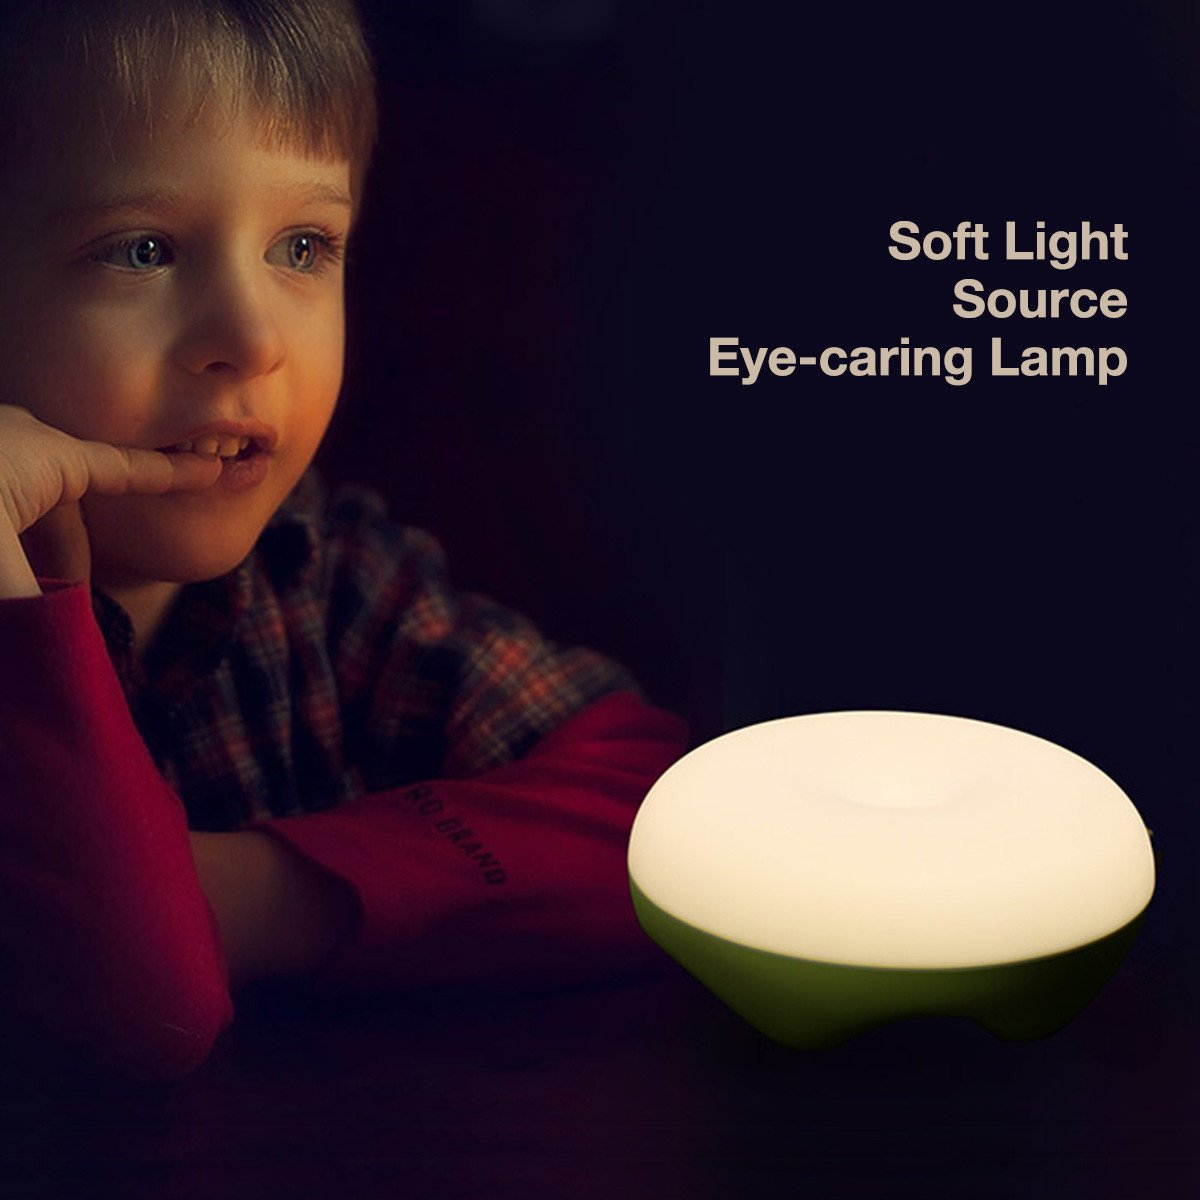 Night Lights for Kids, Poweradd Baby LED Table Lamp, Wireless Gesture Sensor Bedside Table Lamp, Eye-caring 2900K Baby Room Lamp, 4-100 Hours Playing Time, Memory Function, Dimmable LED USB Rechargeable